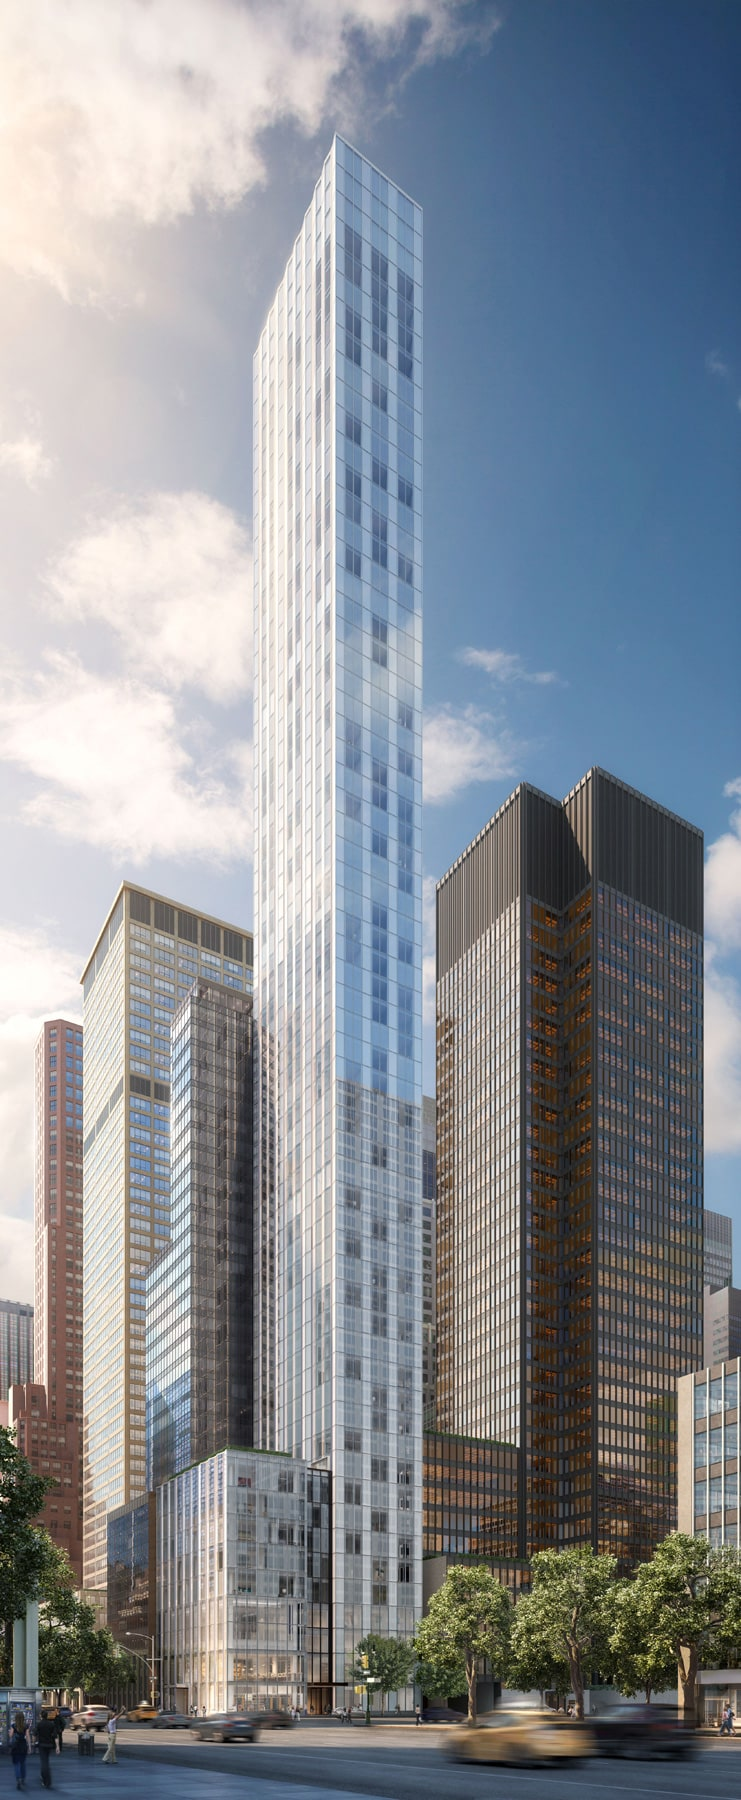 Melbournes new pencil tower to be one of worlds